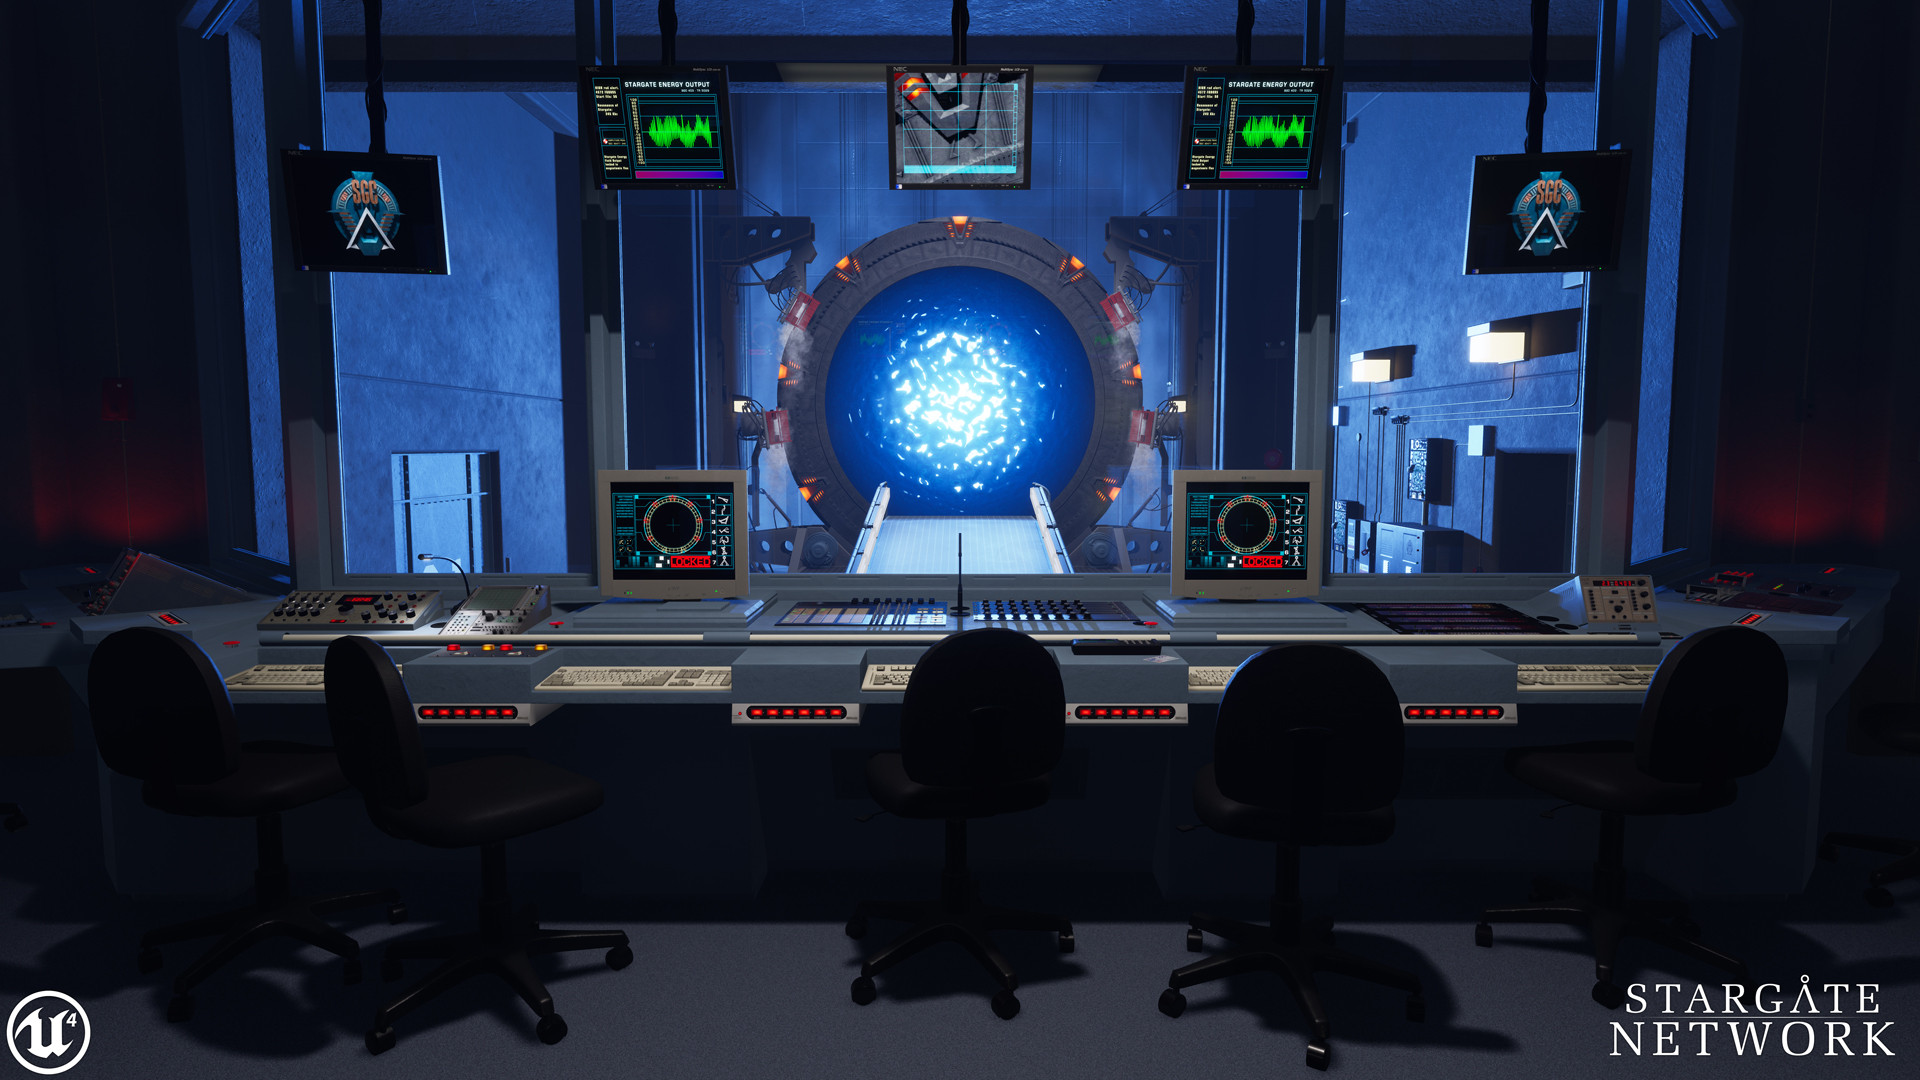 Stargate Network [Unreal Engine 4] [Projects]